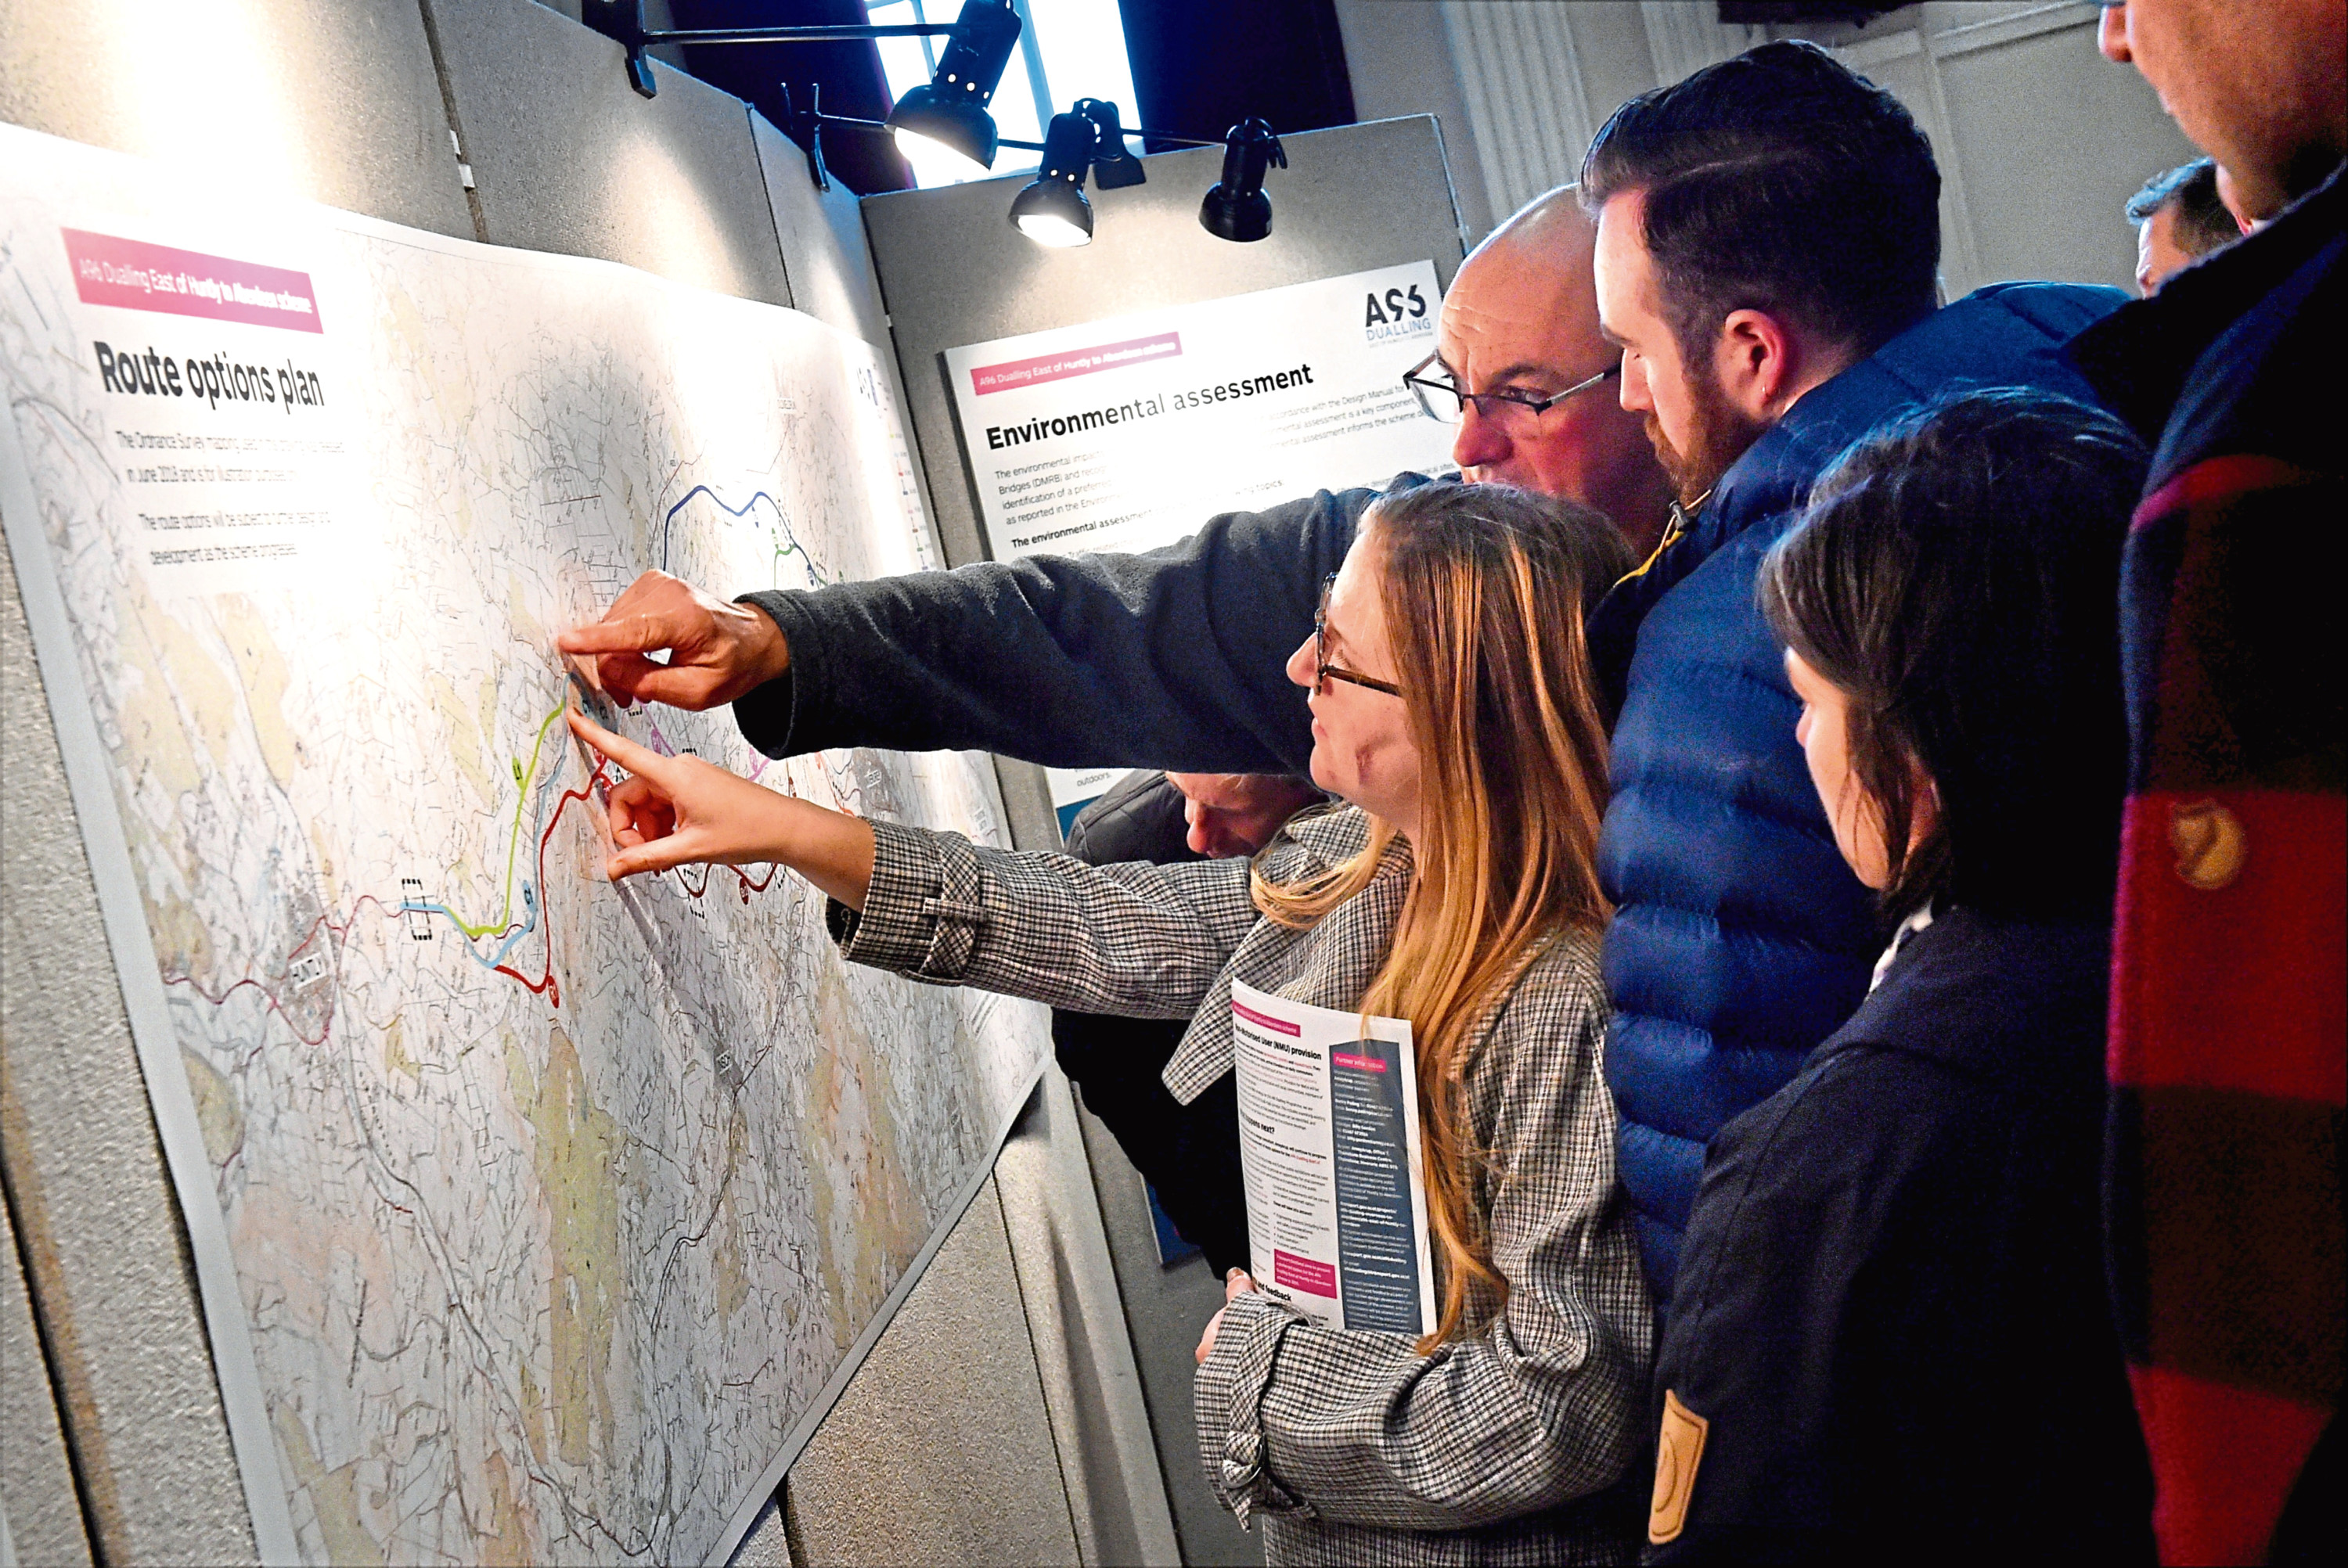 Visitors to a public exhibition held at Inverurie Town Hall detailing the dualling of the A96 East of Huntly to Aberdeen scheme